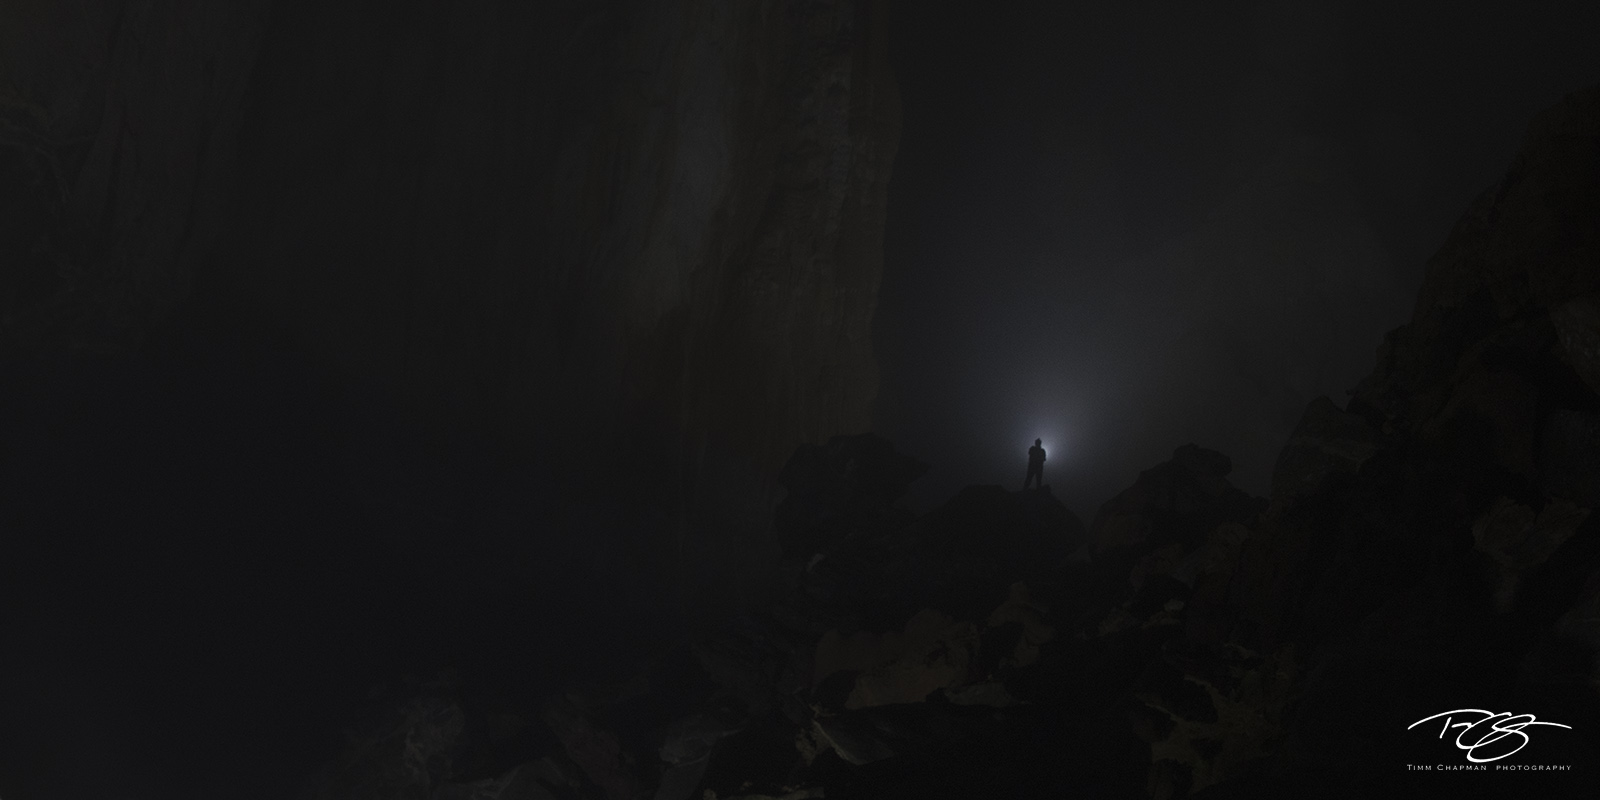 A lone explorer is dwarfed by the darkness inside the colossal Hang Son Ðoòng